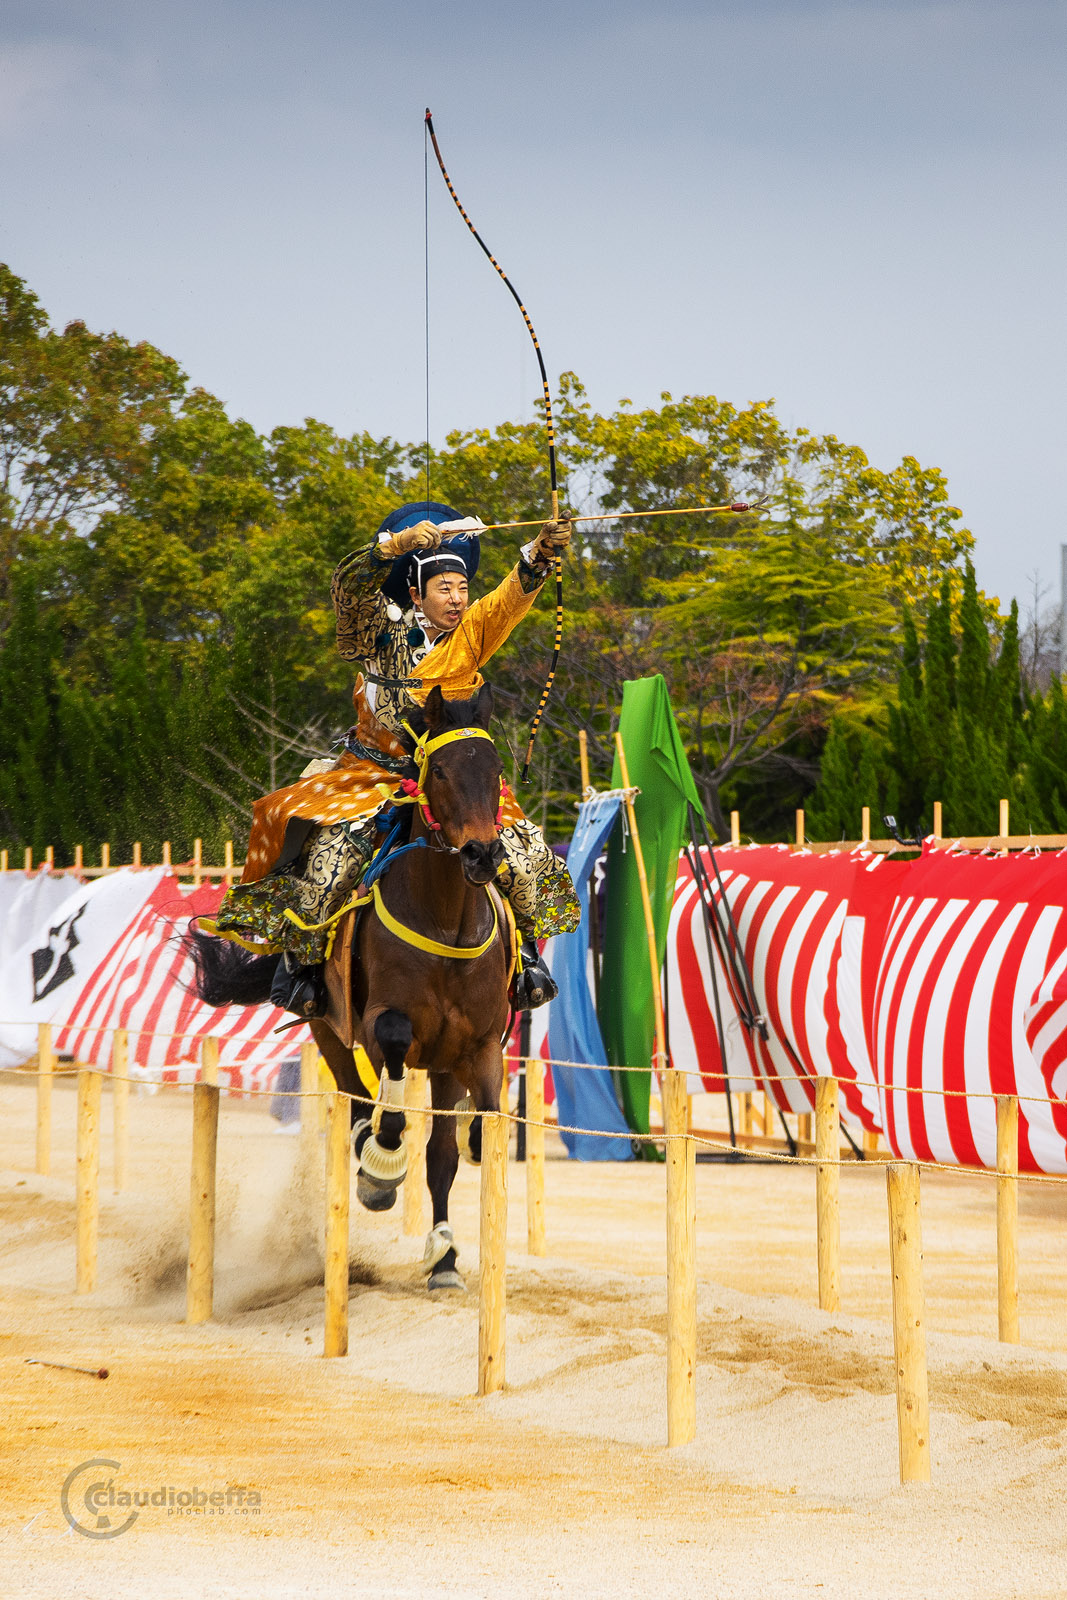 Japan, Yabusame, Traditional mounted archery, archer tightens his bow